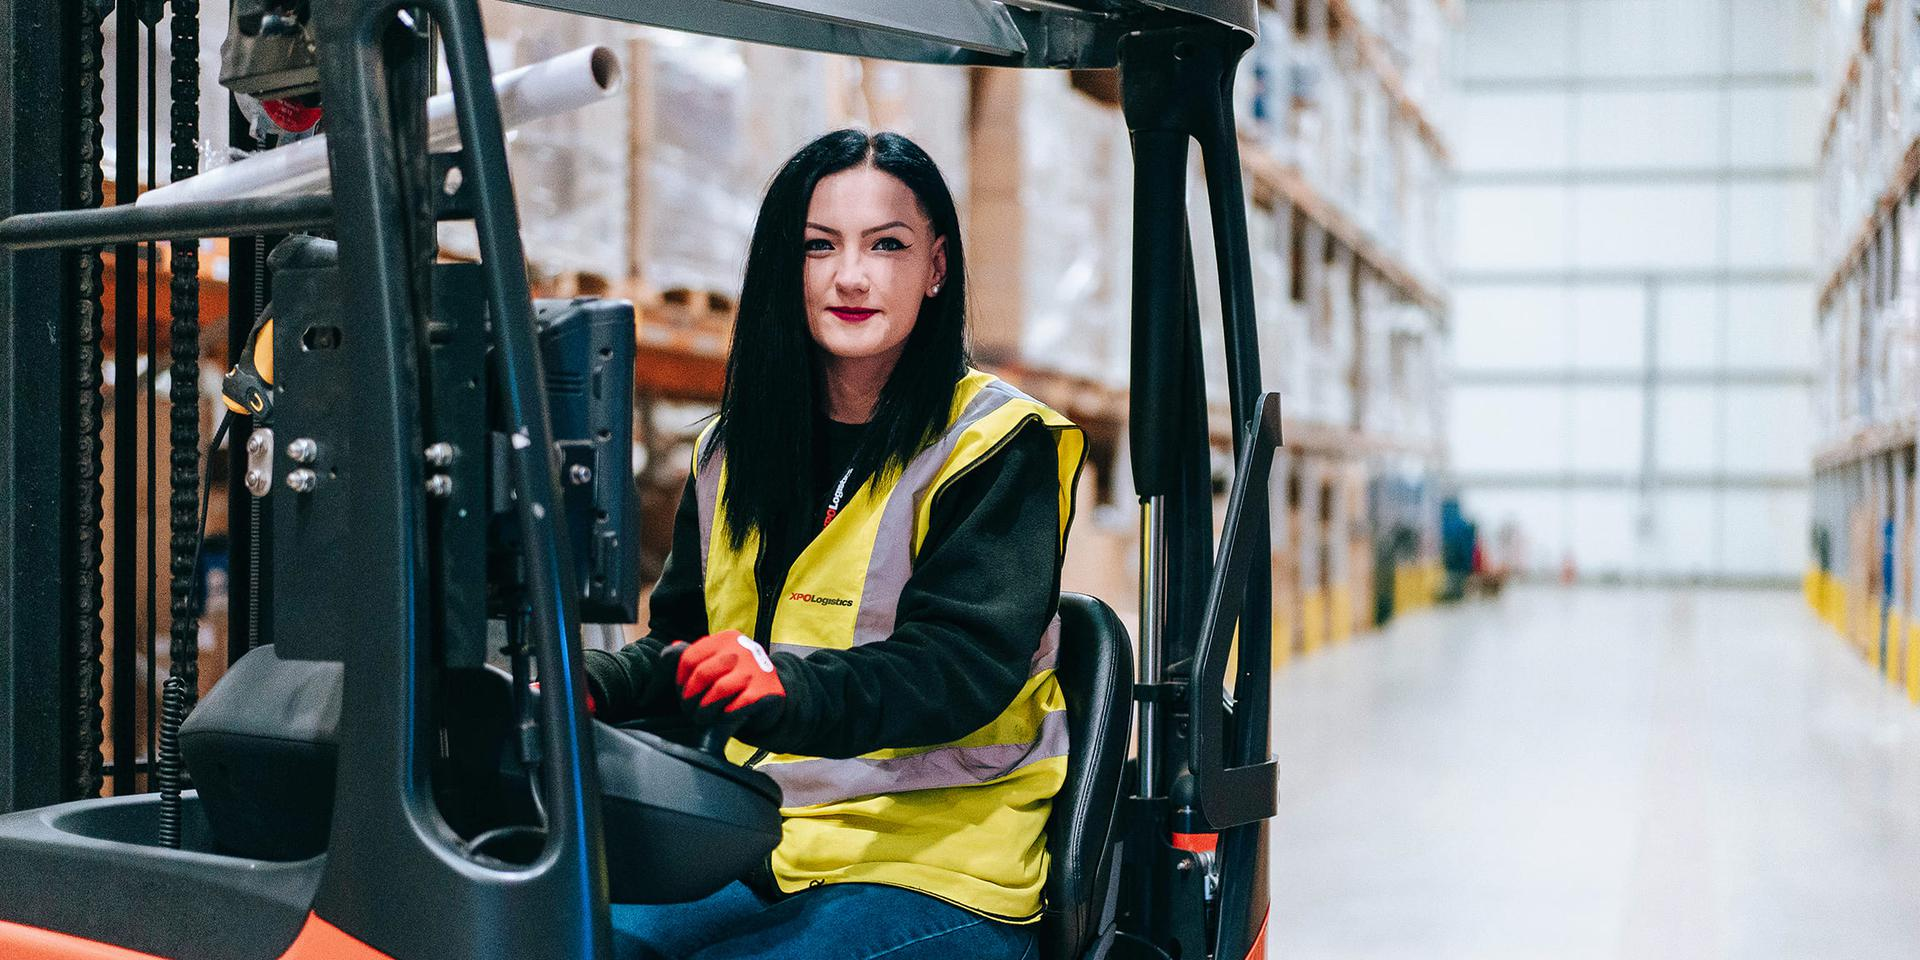 XPO forklift operator